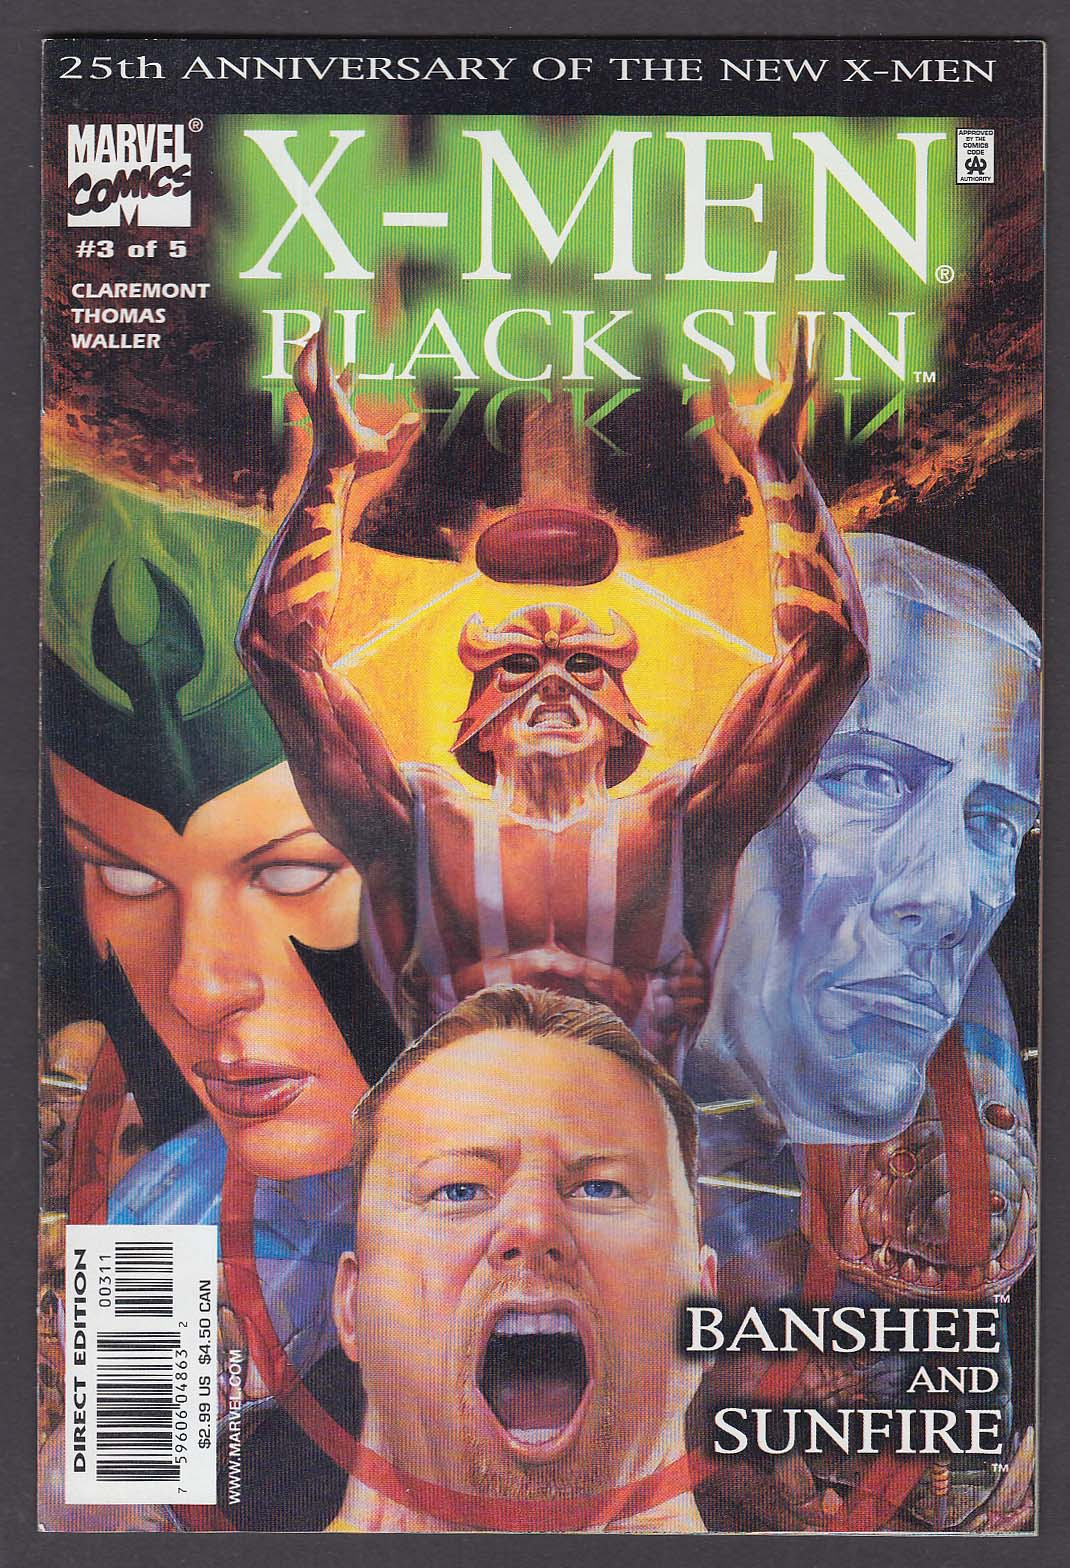 Black Sun: Banshee & Sunfire #3 Marvel comic book 11 2000 X-Men